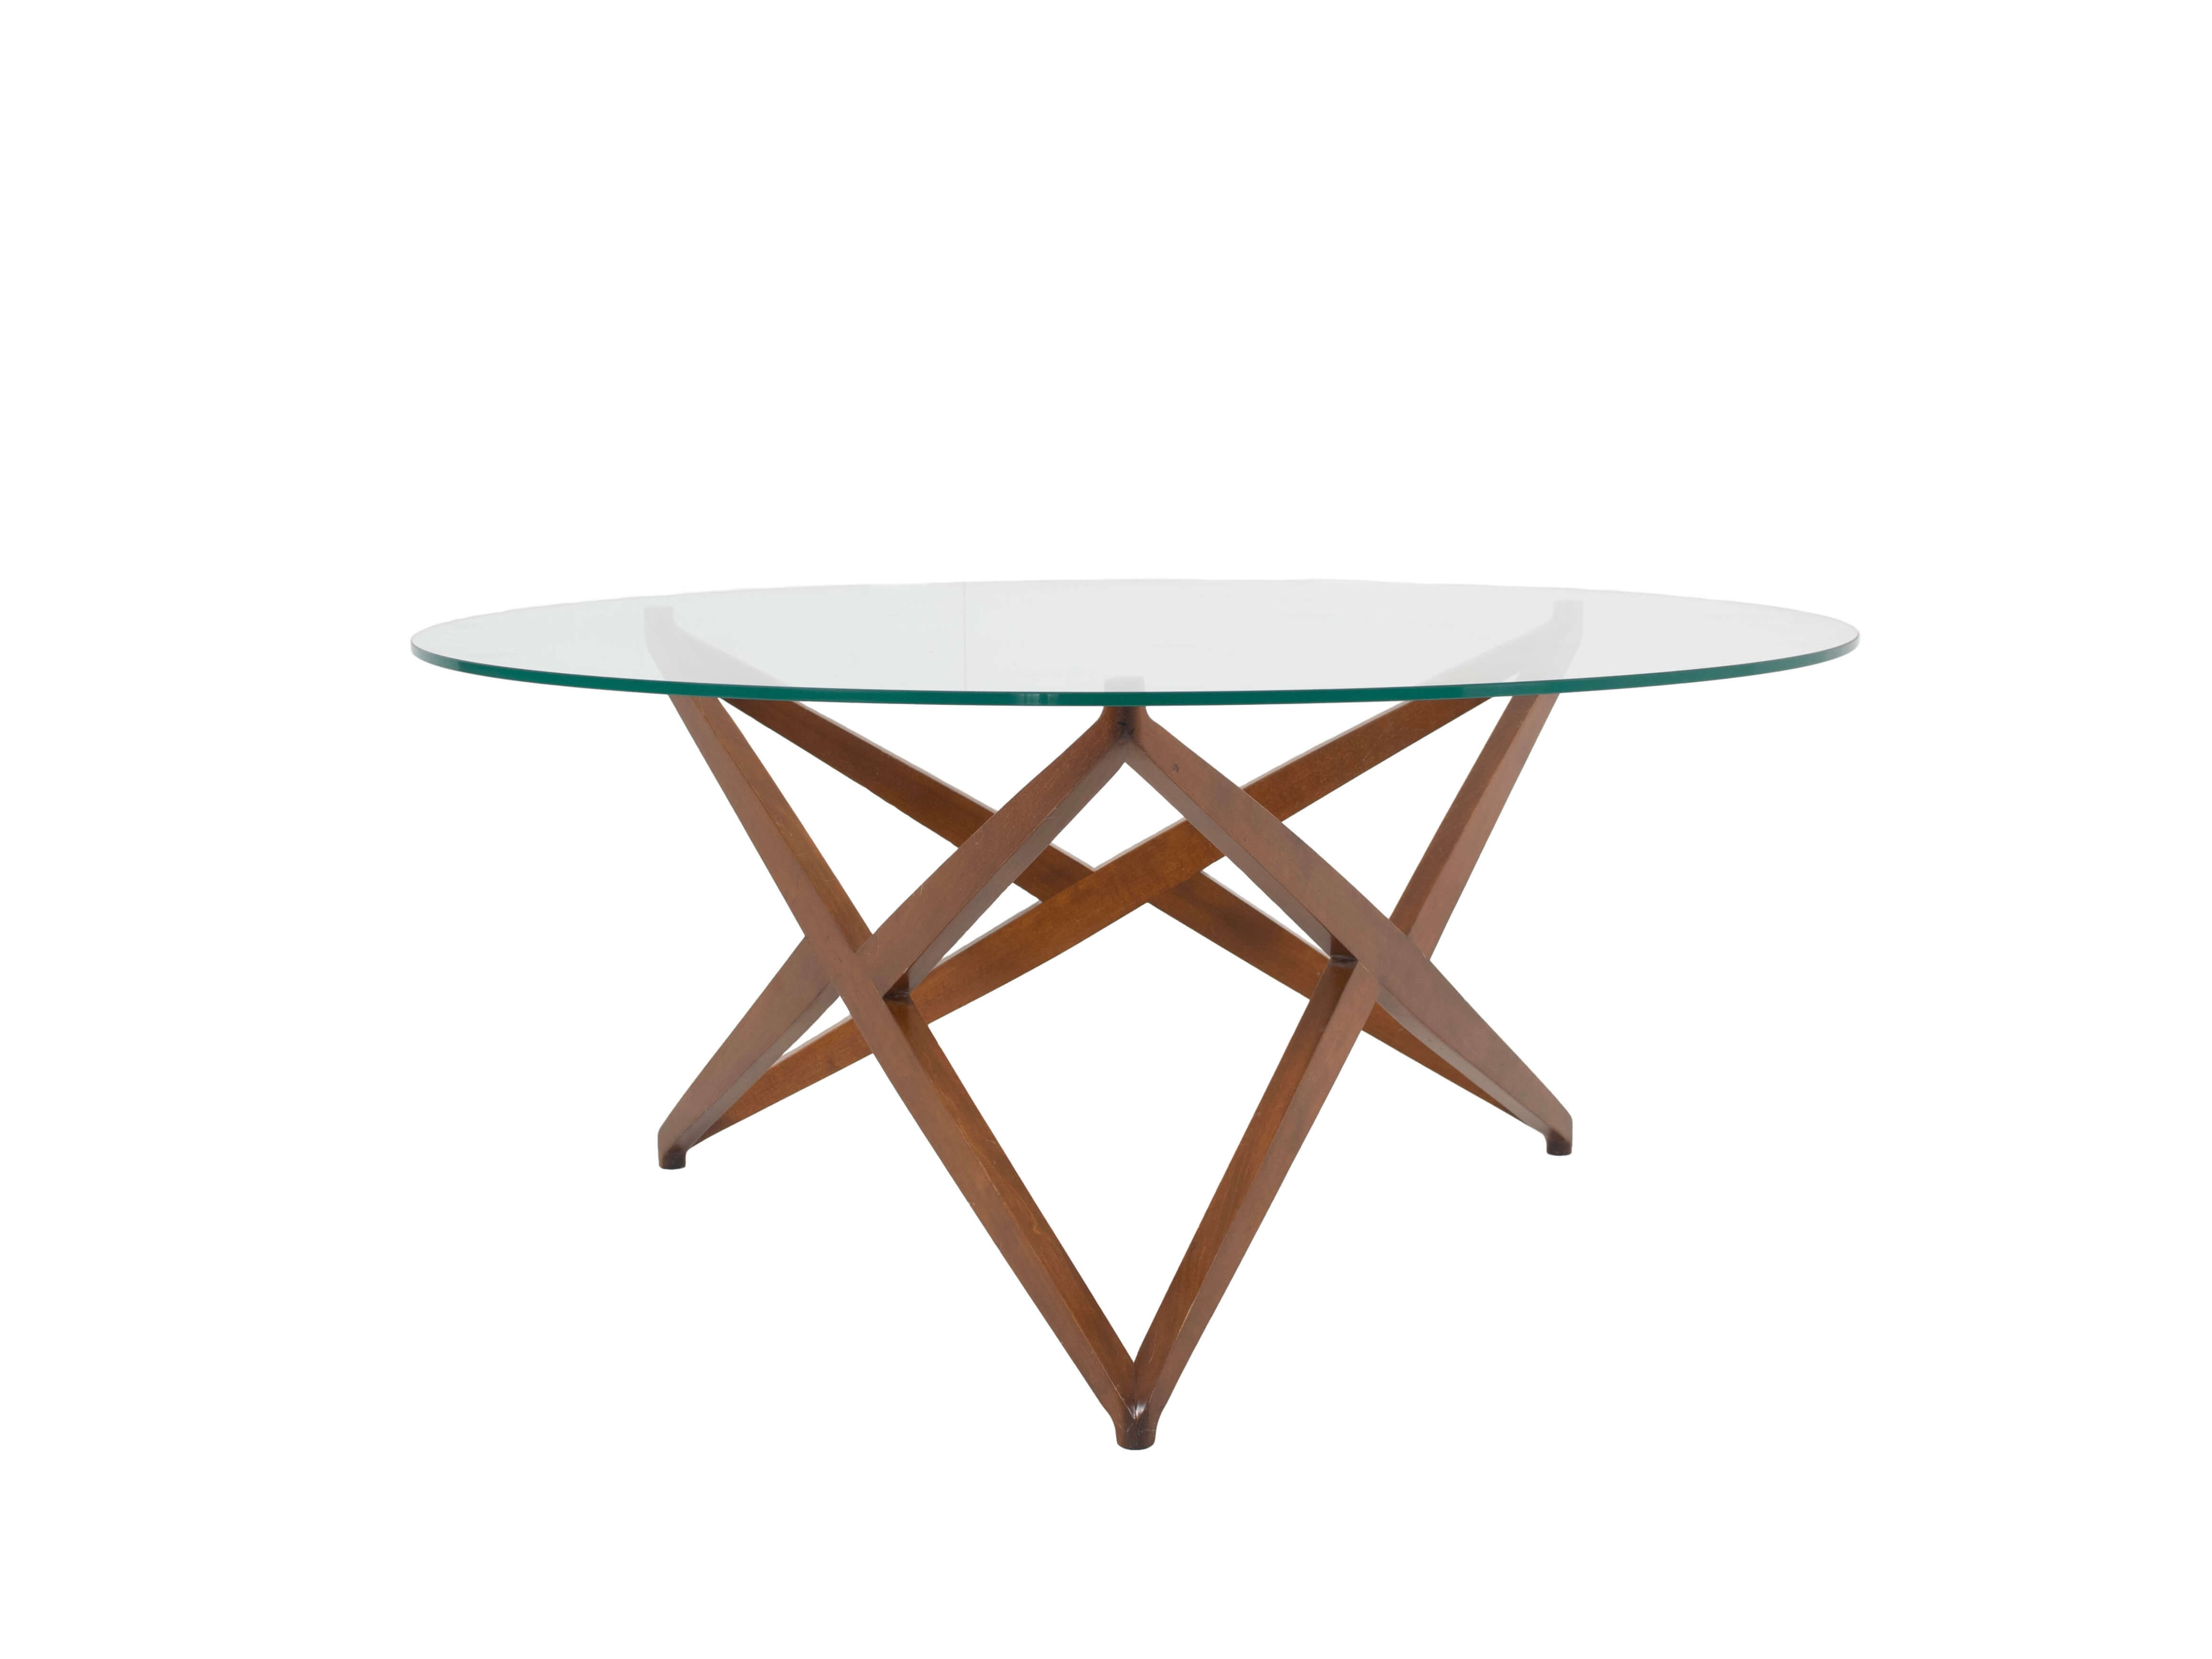 Italian Modern Round Coffee Table with Star-shaped Base by Angelo Ostuni, Italy 1960s